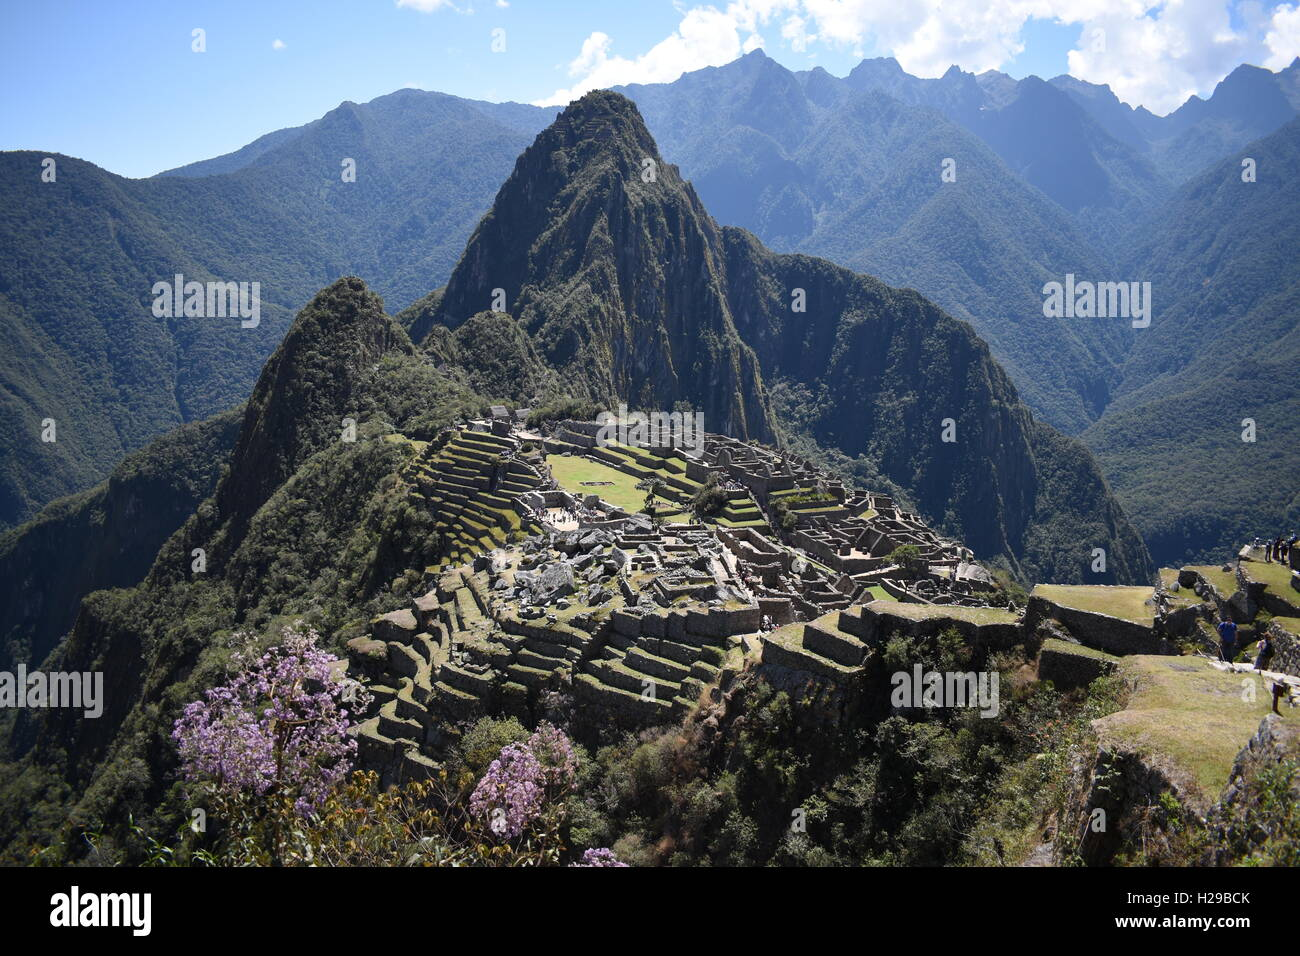 The Inca settlement of Machu Picchu, Peru. - Stock Image